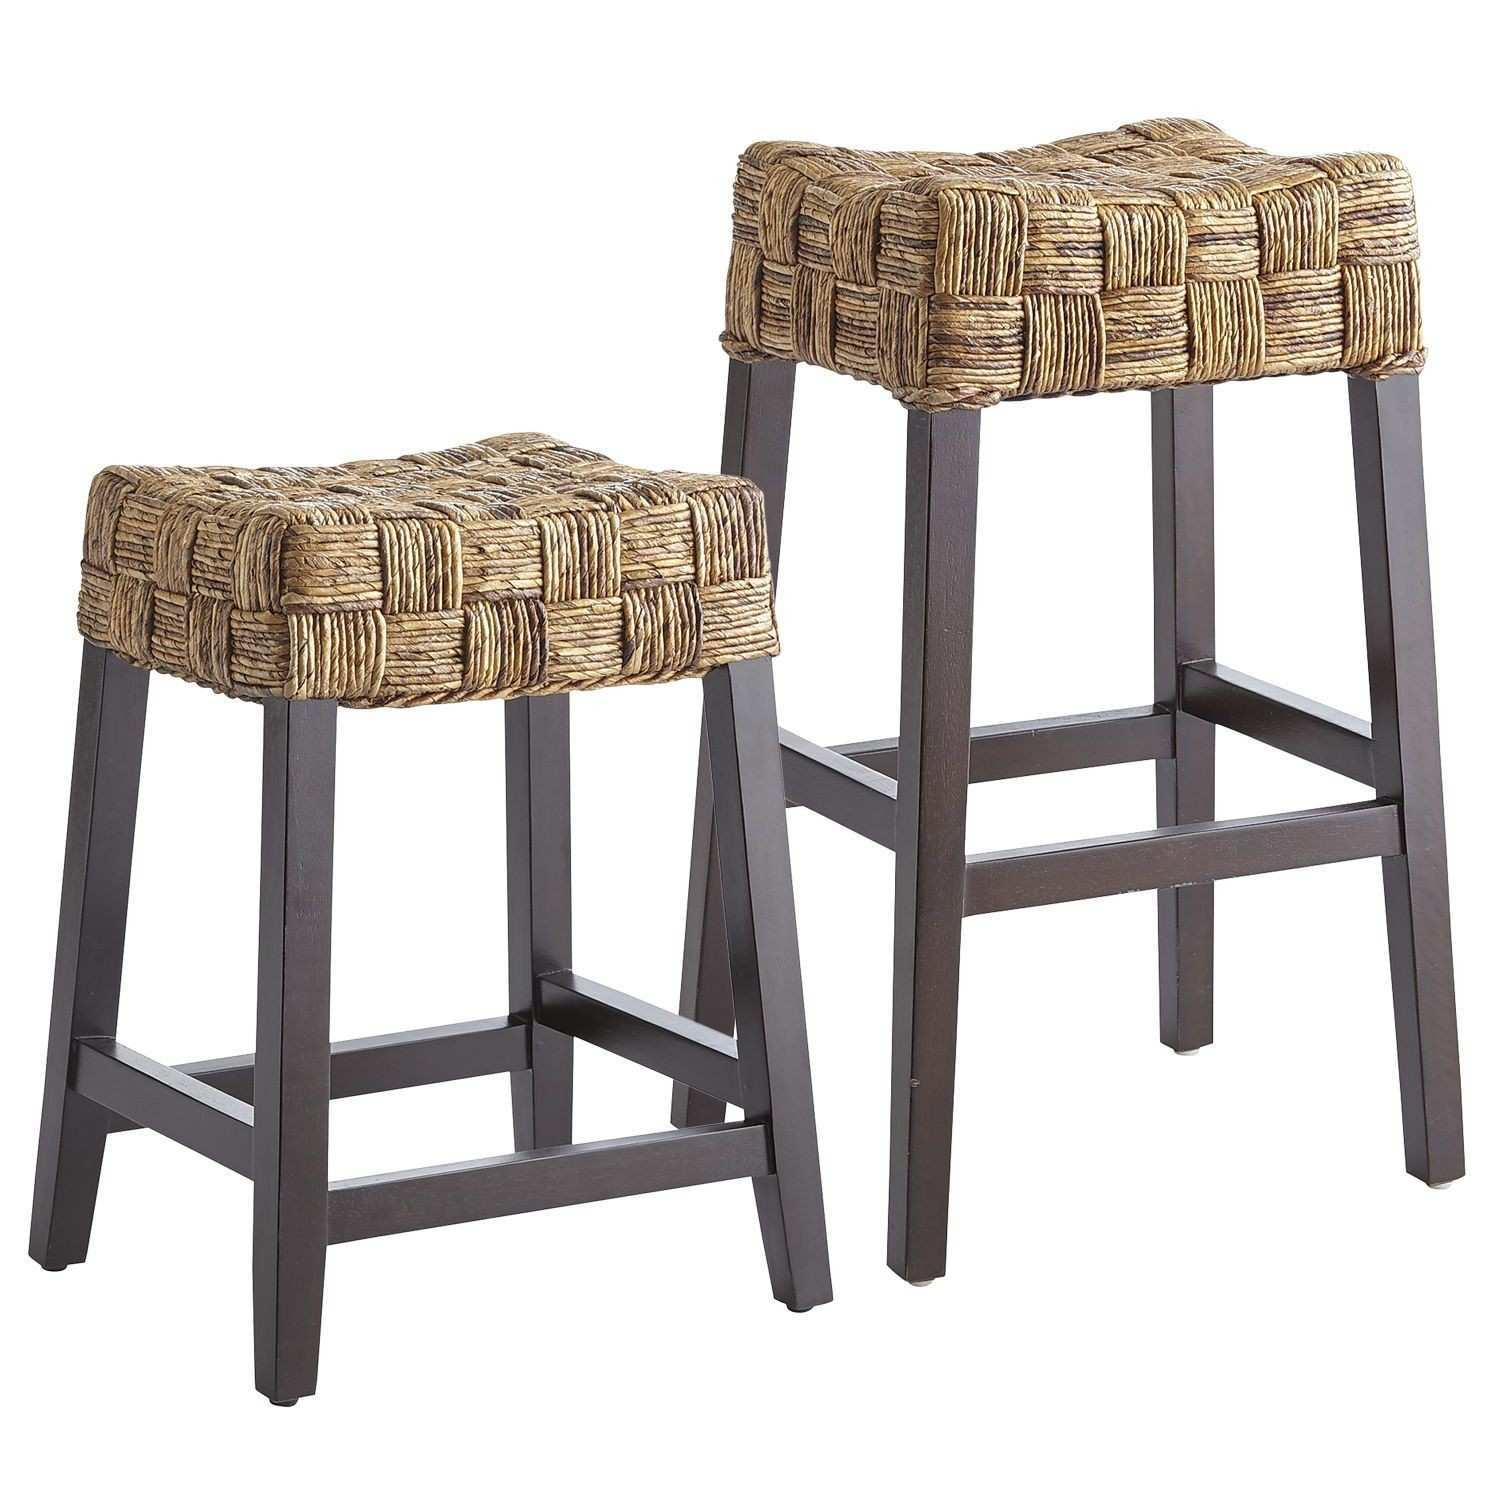 bar stools pier one lucite dining room table extra bench seat imports counter height lamps accent chairs frames tall full size wine rack shelf handmade coffee grey nest tables